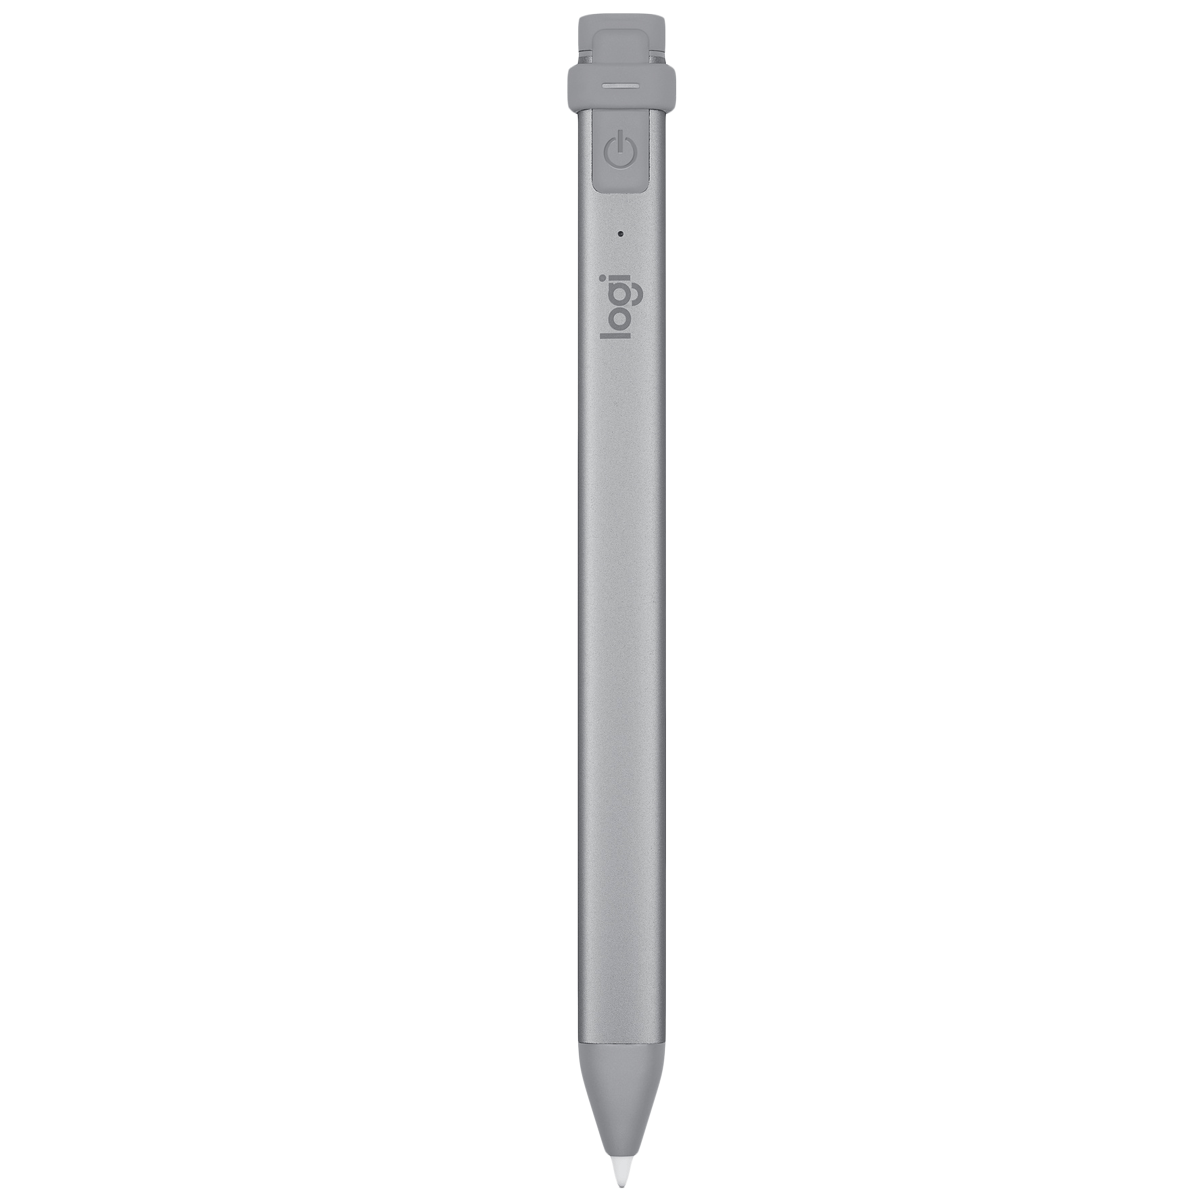 Logitech Crayon Pencil For iPad (Palm Rejection Technology, 914-000035, Grey)_1